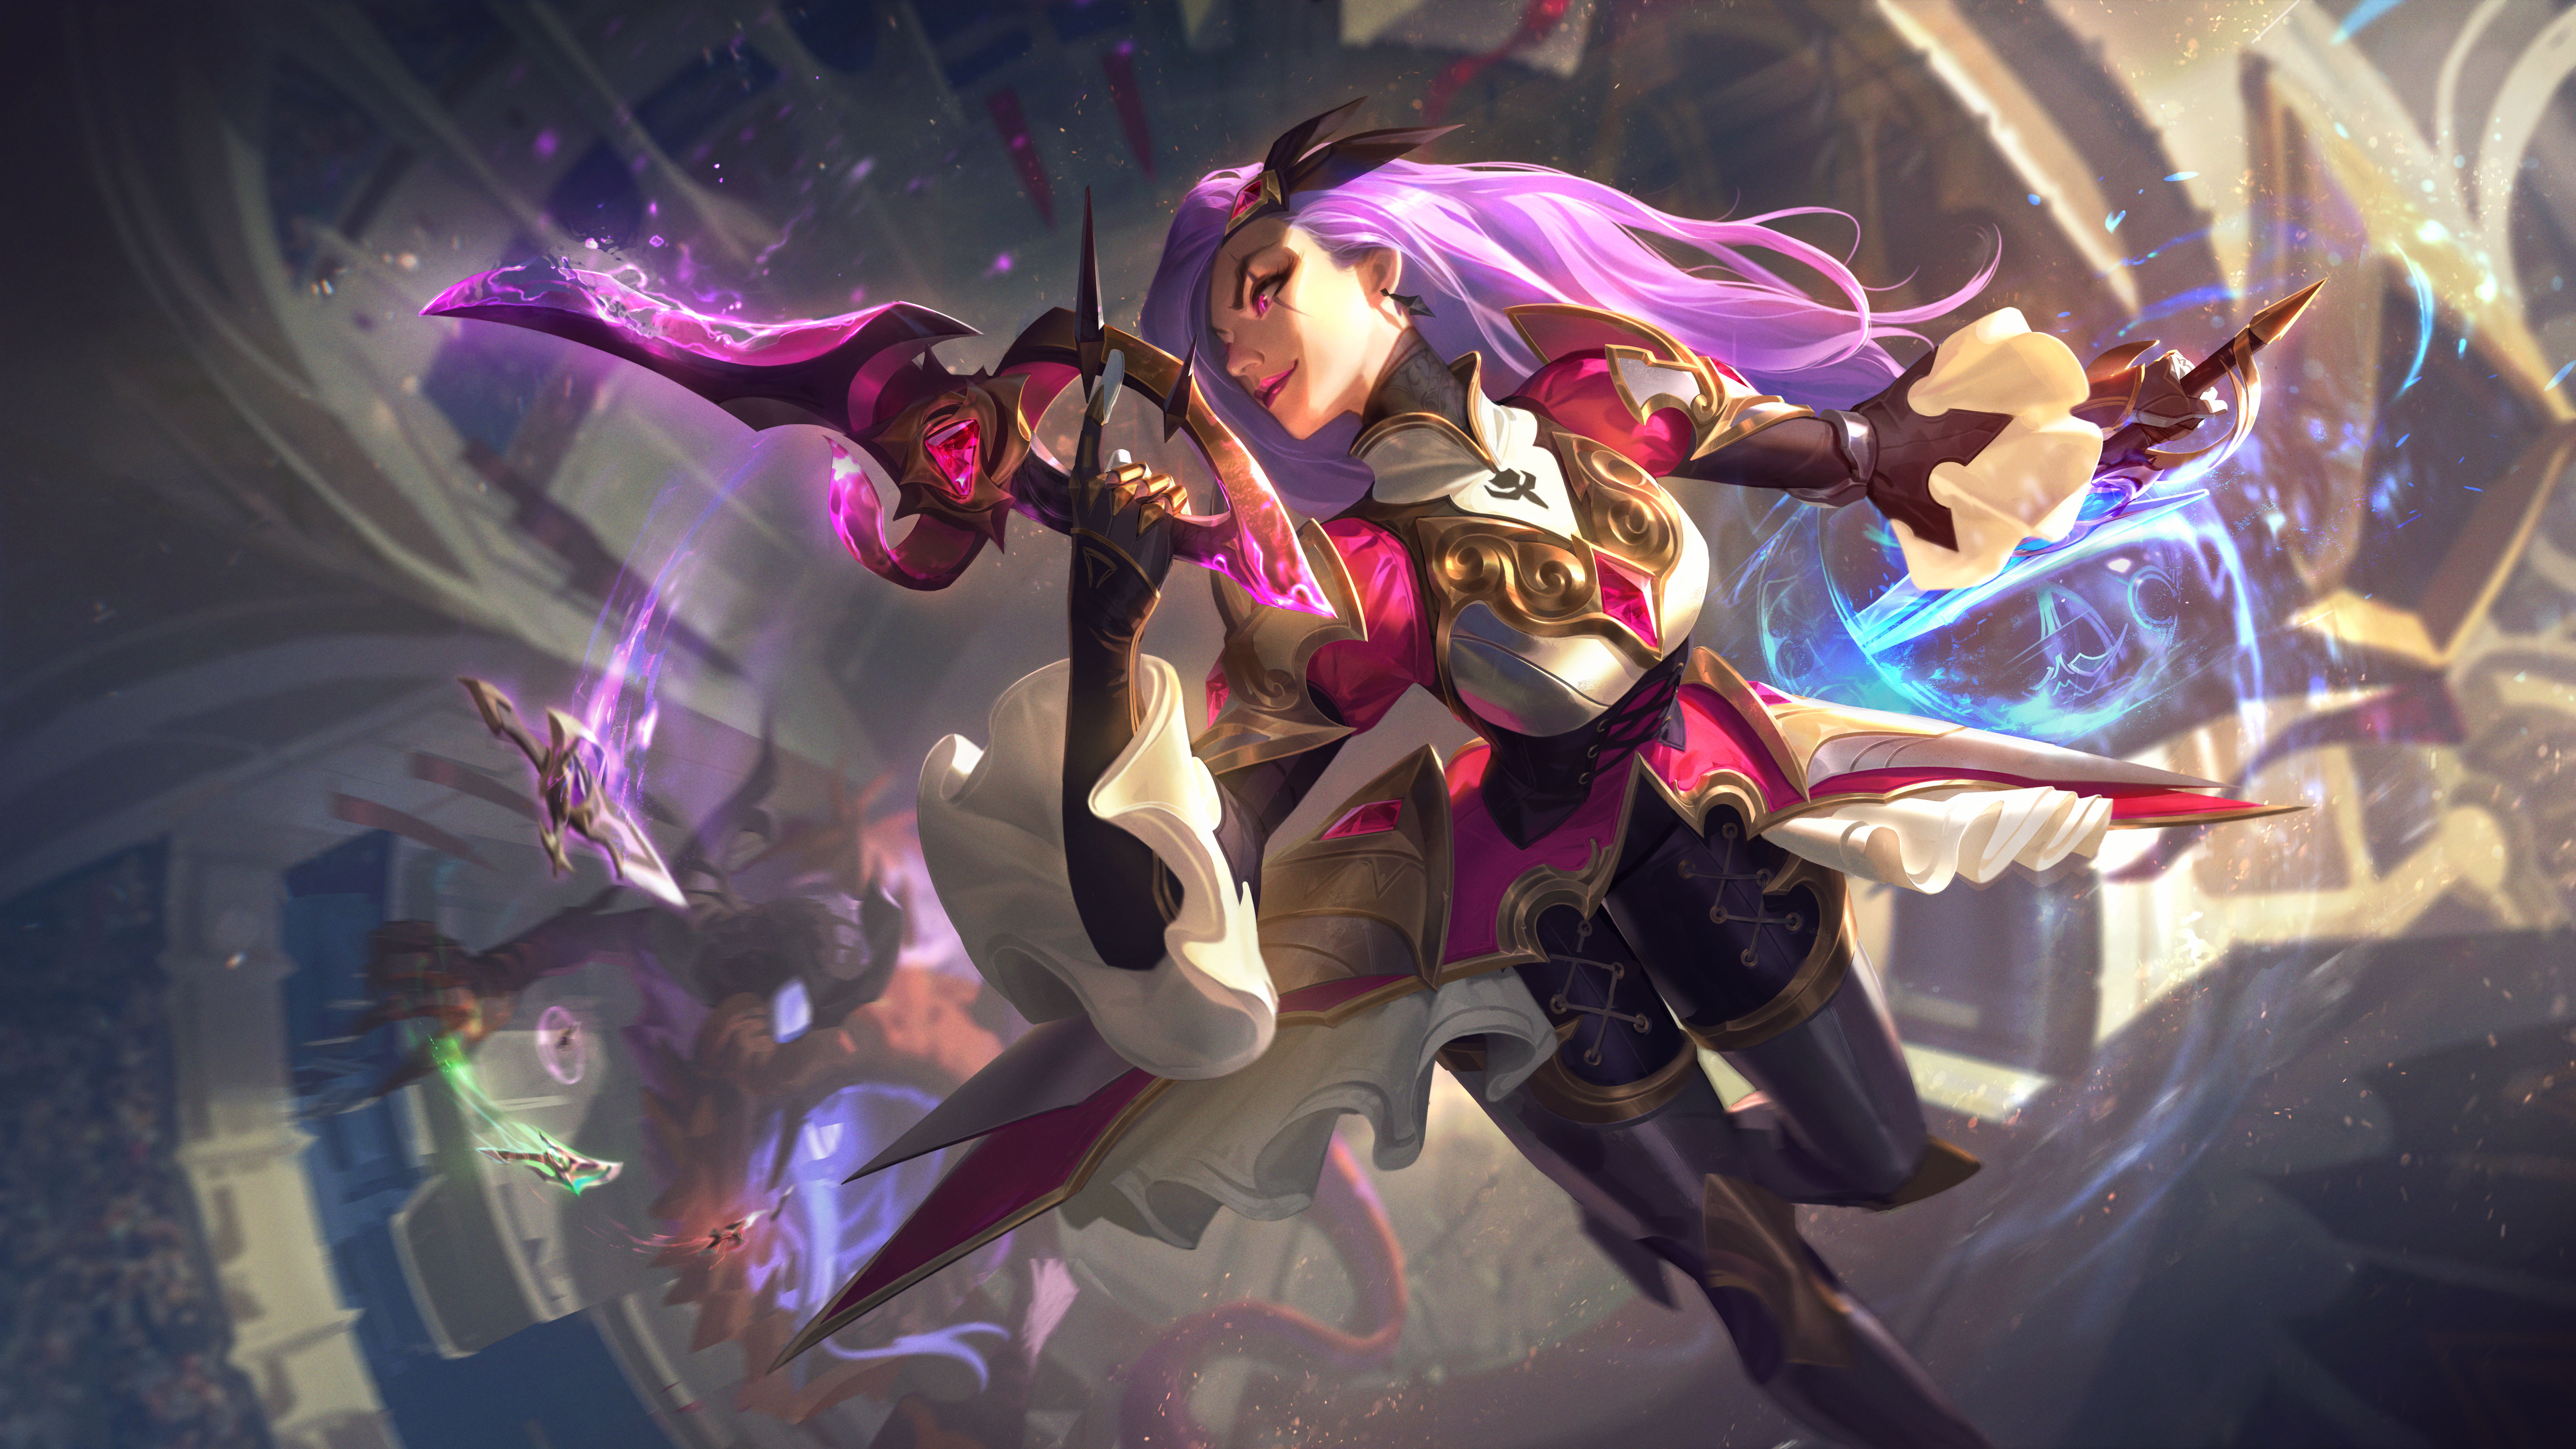 League Of Legends Battle Queens 2020 League Of Legends Support Engoy the janna game play in aram and be sure to subscribe the channel it's free! league of legends support riot games